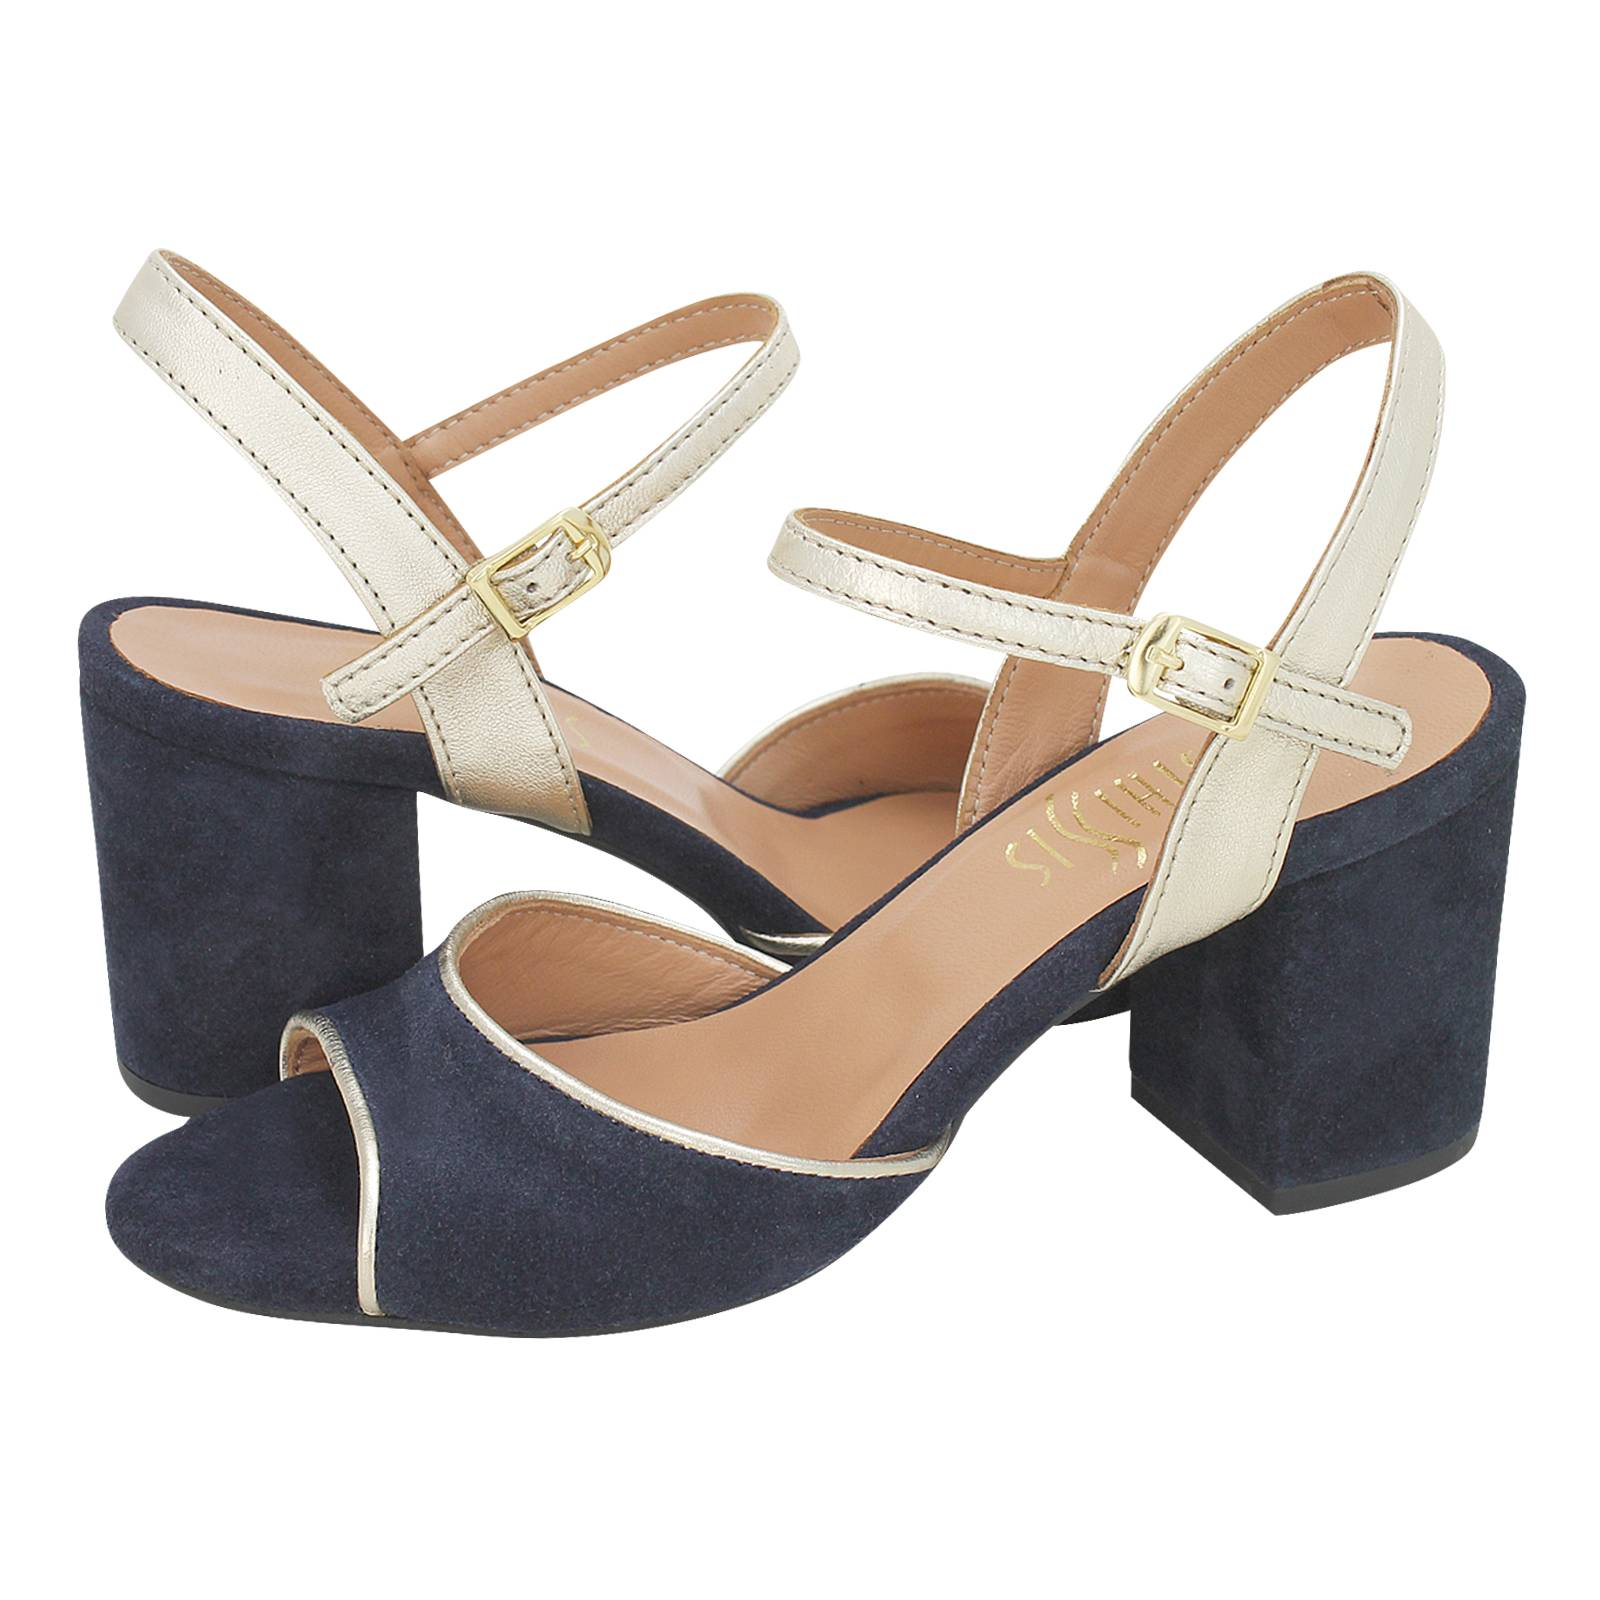 Senaud - Esthissis Women s sandals made of suede and leather ... cf066d8f381